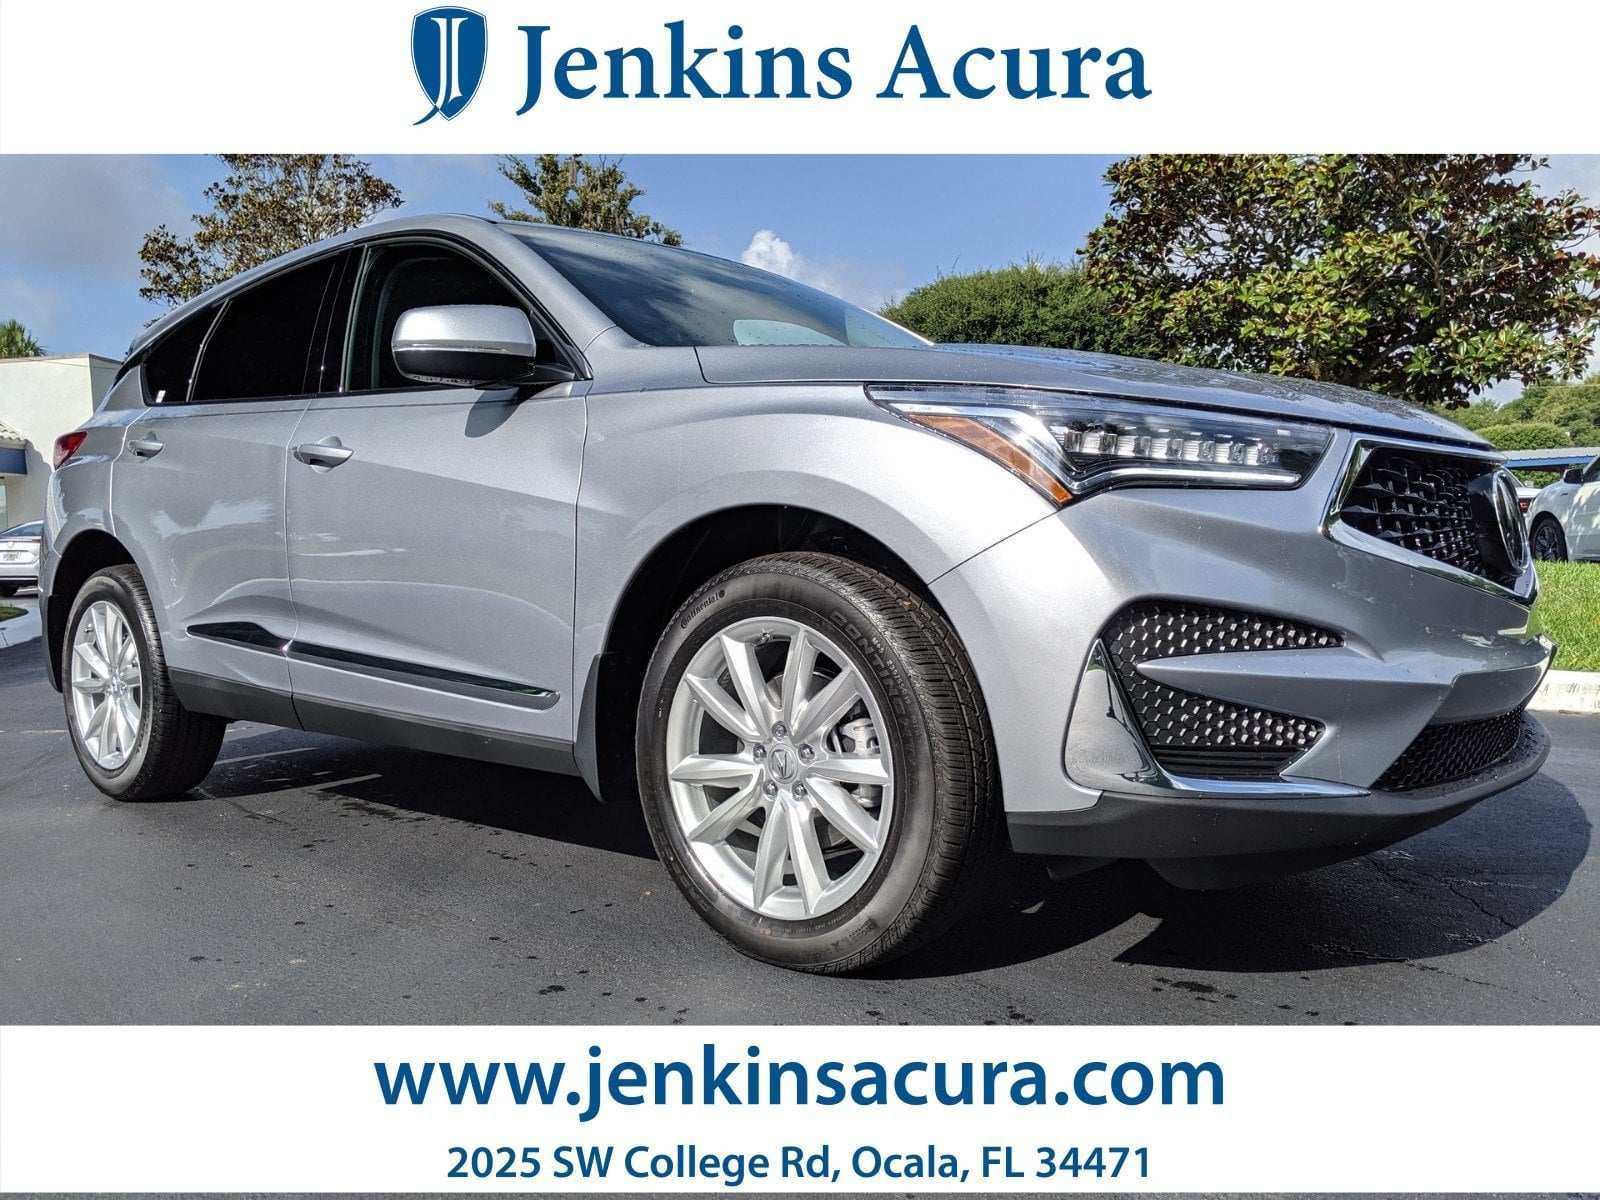 36 All New 2020 Acura Rdx For Sale Spesification with 2020 Acura Rdx For Sale